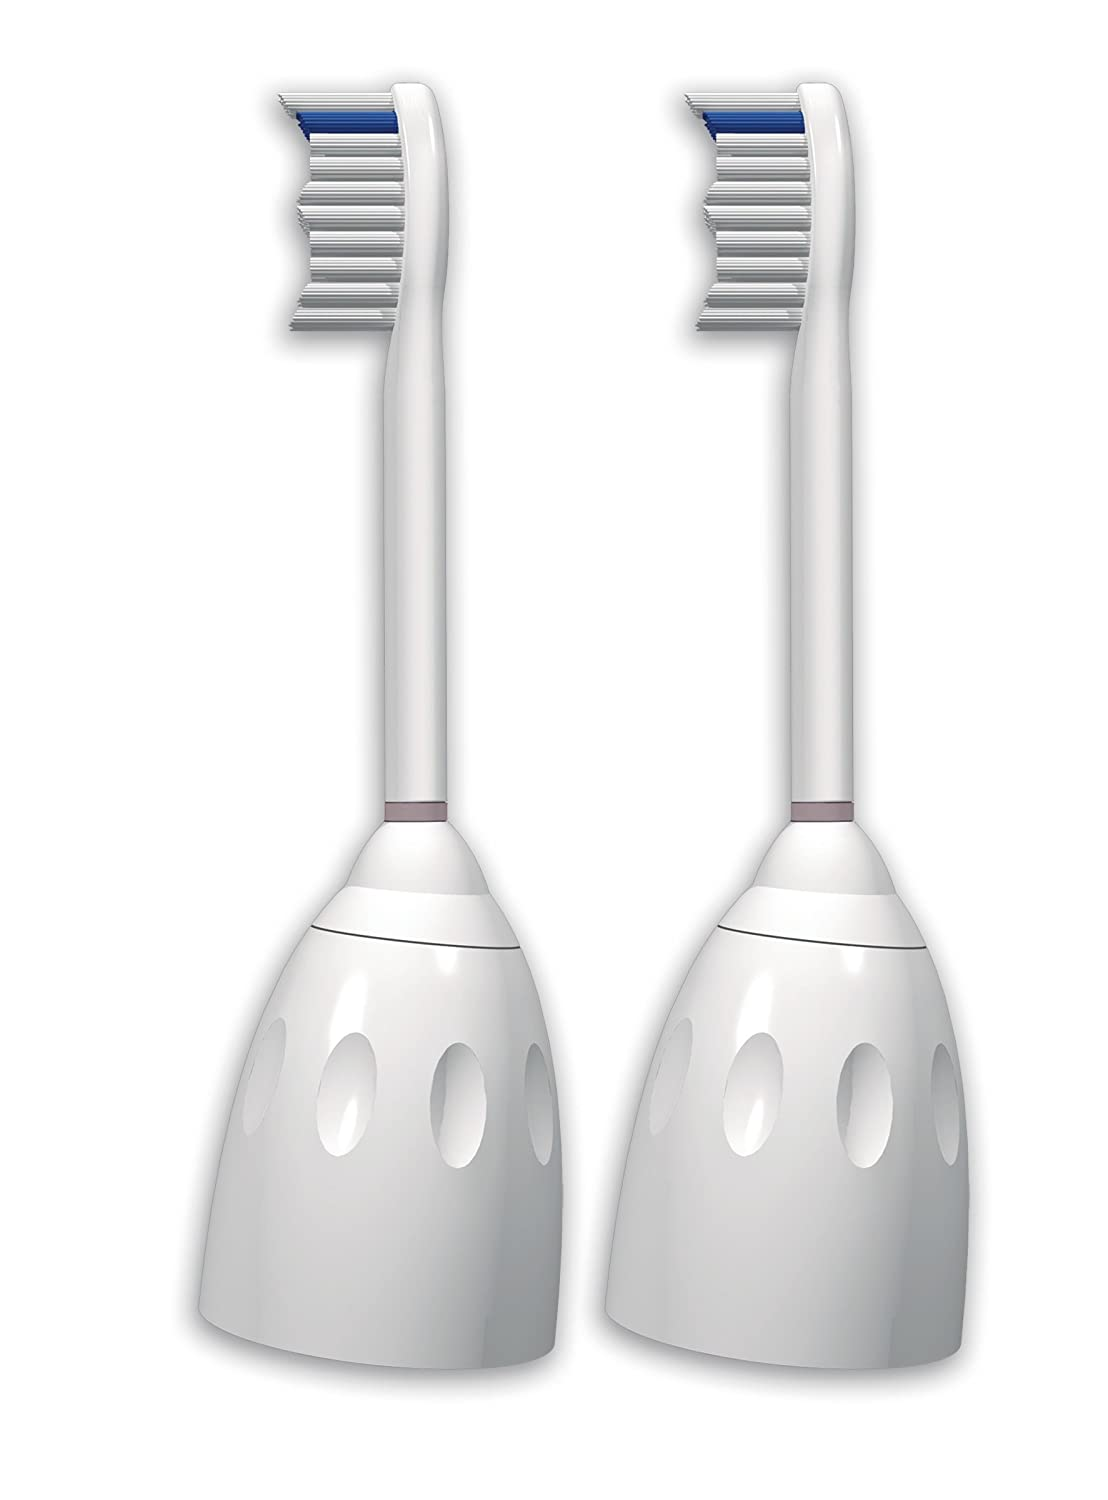 Philips Sonicare E-Series Replacement Brush Heads, 2 Pack, HX7022/64 HX7022/66